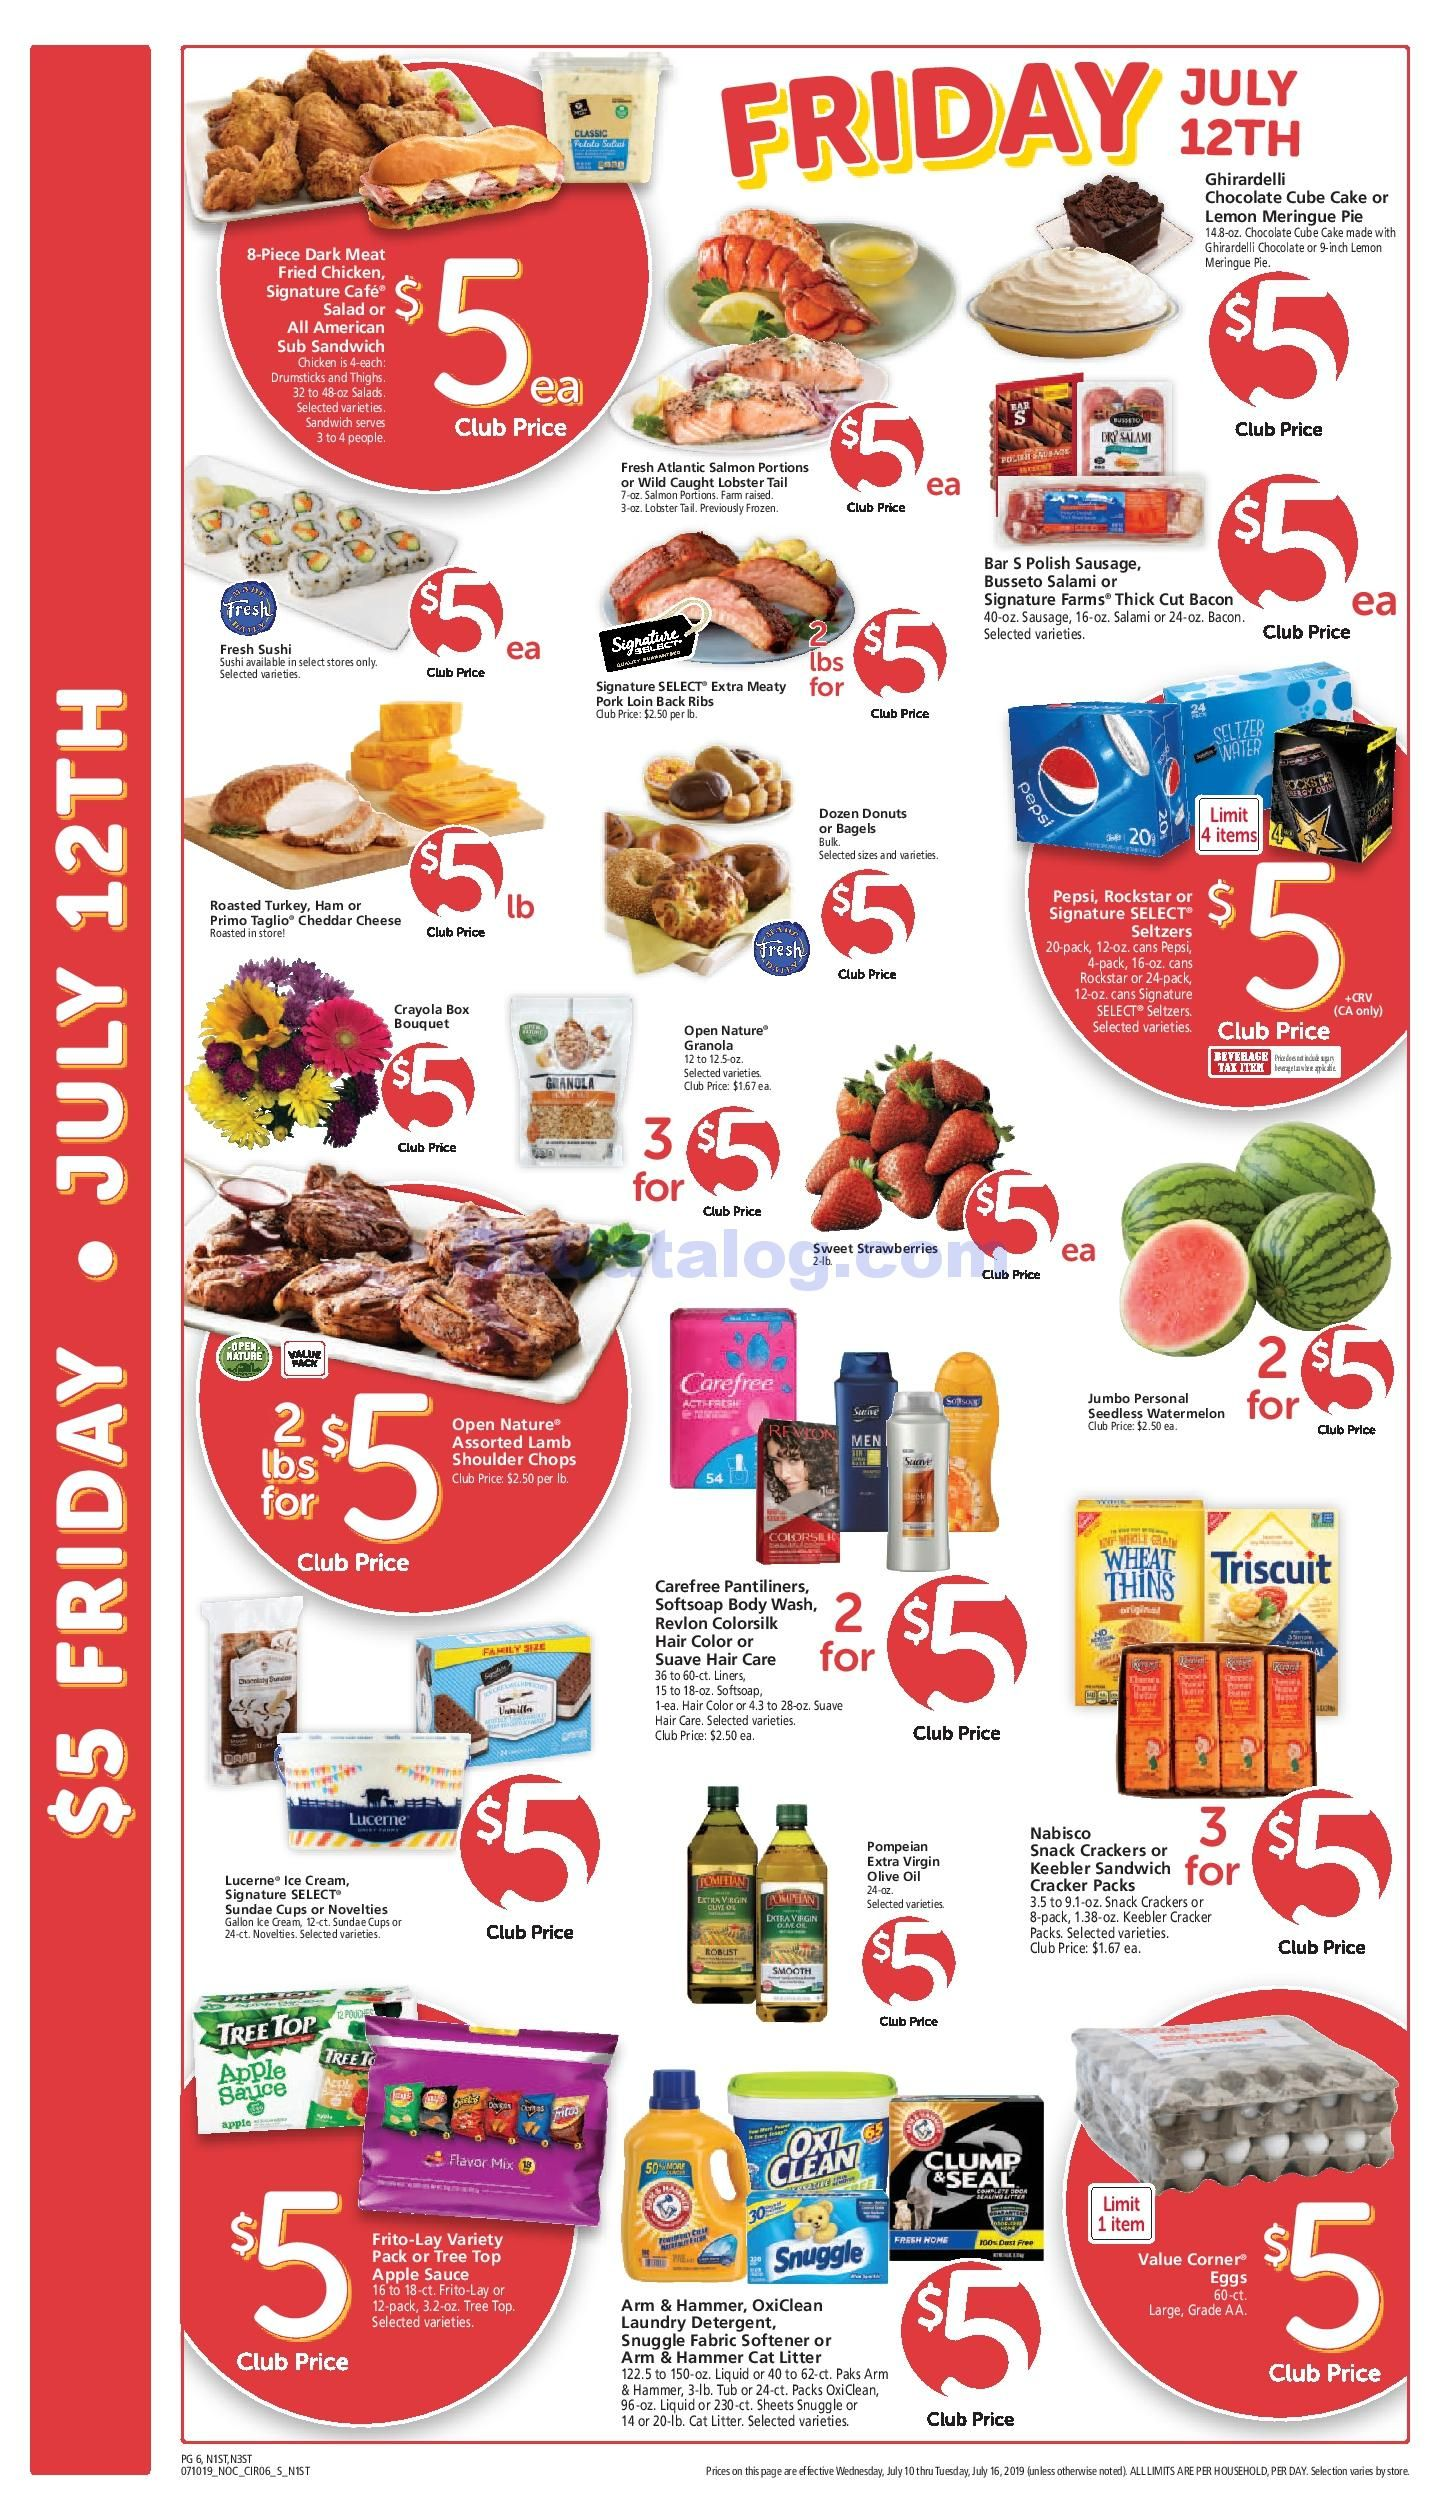 Safeway 5 Friday Ad Mar 20th, 2020 Weekend Sale Preview